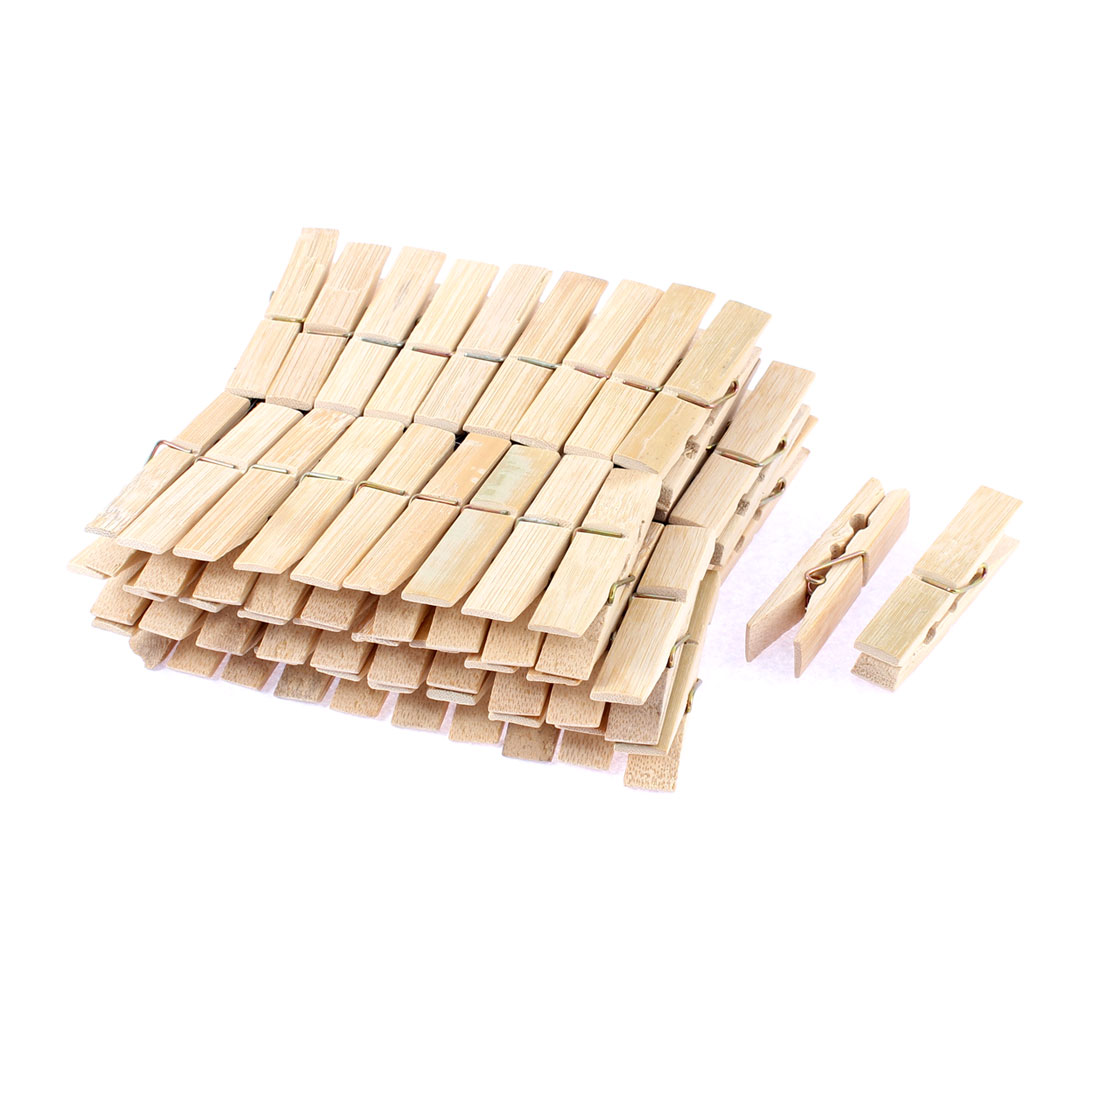 60pcs Wooden Photos Paper Laundry Hanging Clothes Pins 60mm Length